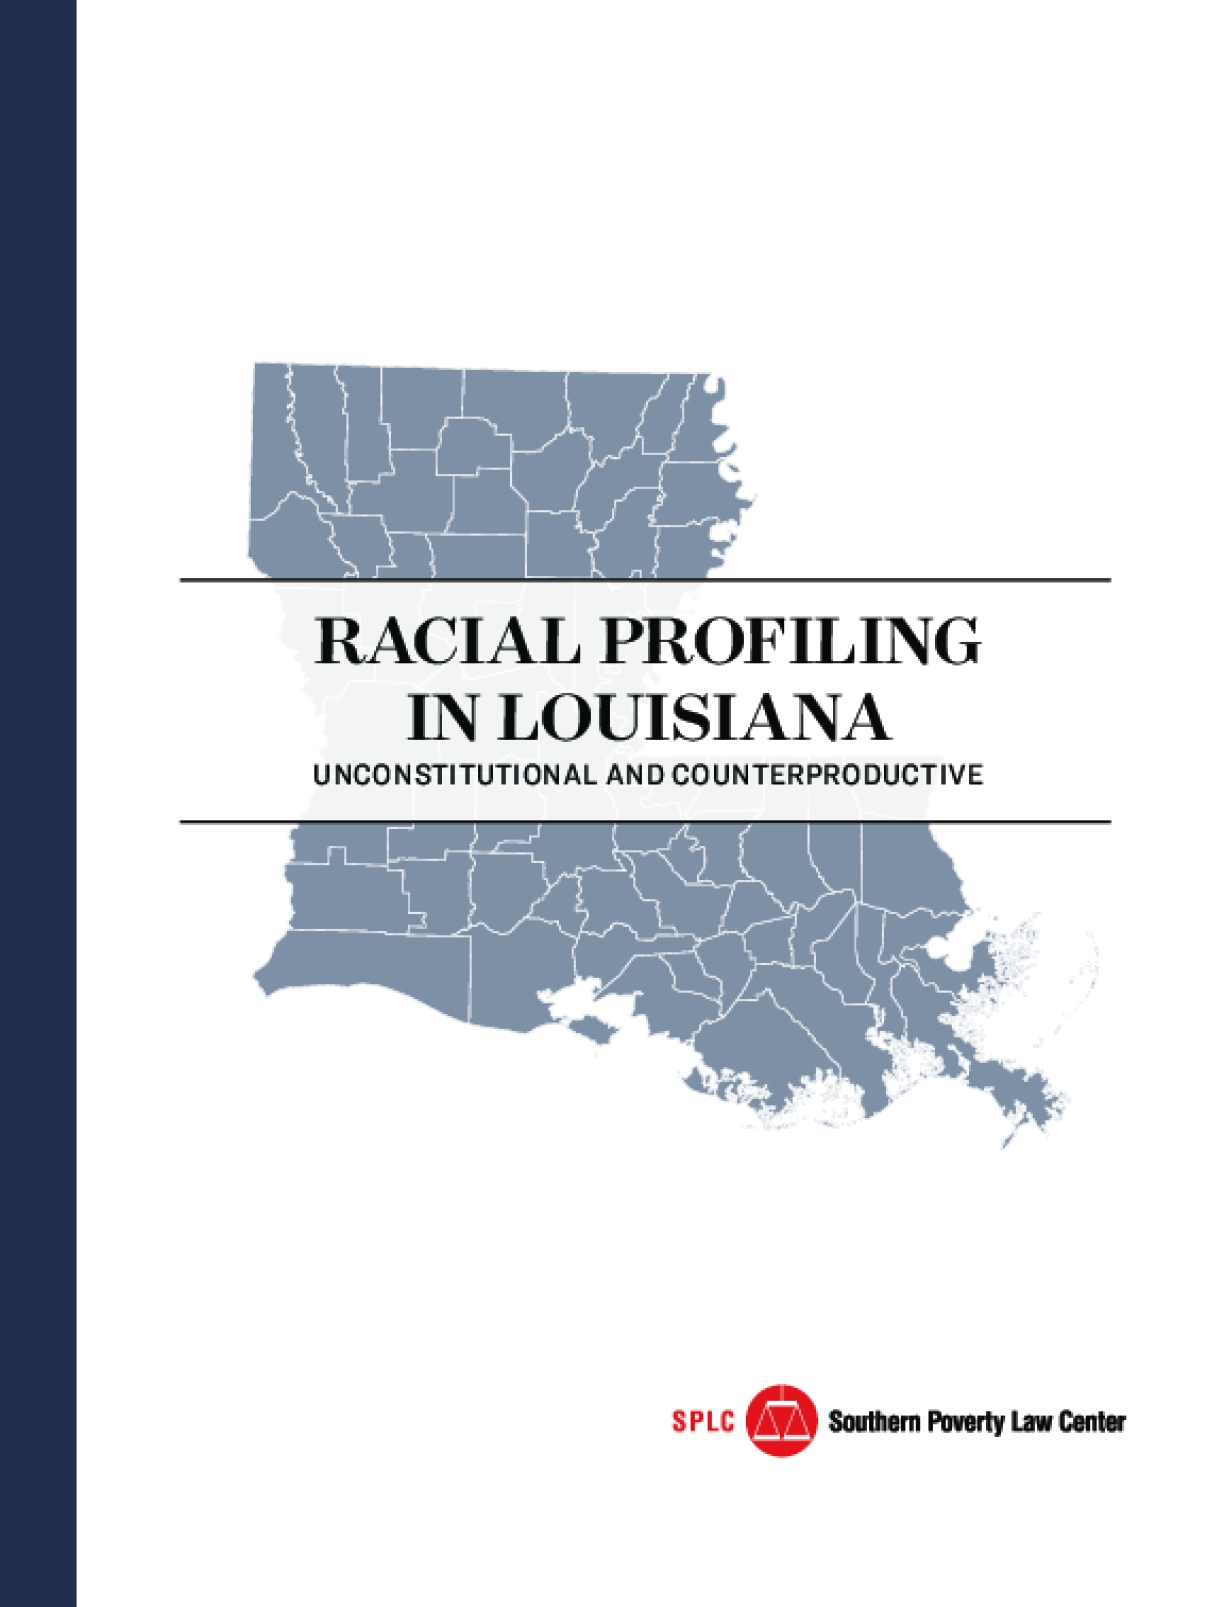 Racial Profiling in Louisiana: Unconstitutional and Counterproductive